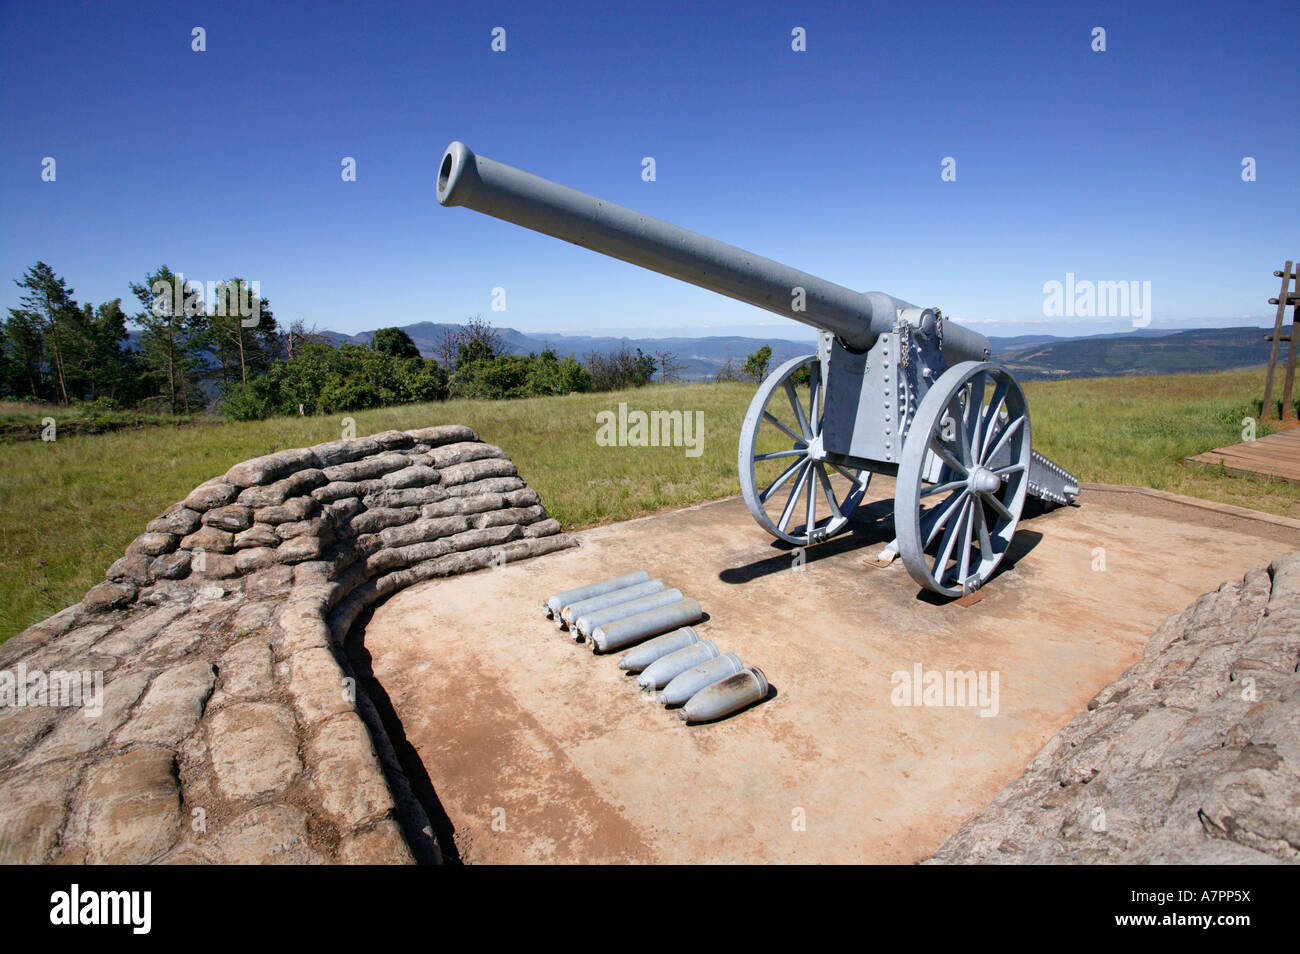 The Long Tom Canon on Long Tom pass near Sabie the canon was used in the Anglo Boer War 1899 1902 Long Tom Pass - Stock Image